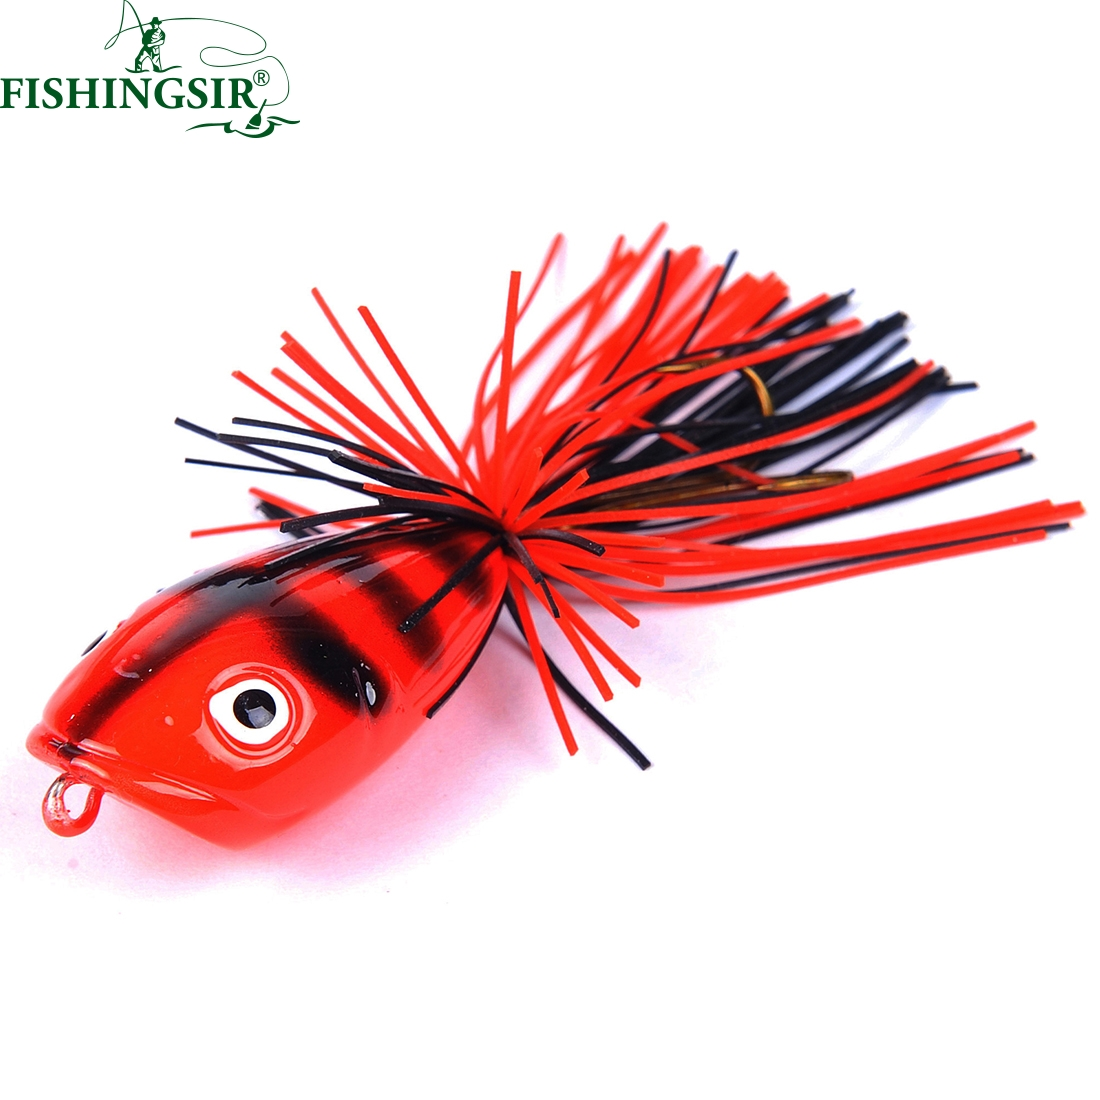 Winter Fishing Frog Surface Mini Frog Popper Plugs Panfish Baits Bass Carp Artificial Hard Fishing Lures Pesca Tackle 46mm/55mm well known brand leozoe pure castor oil certificate origin us authentication high quality castor essential oil 30ml100ml